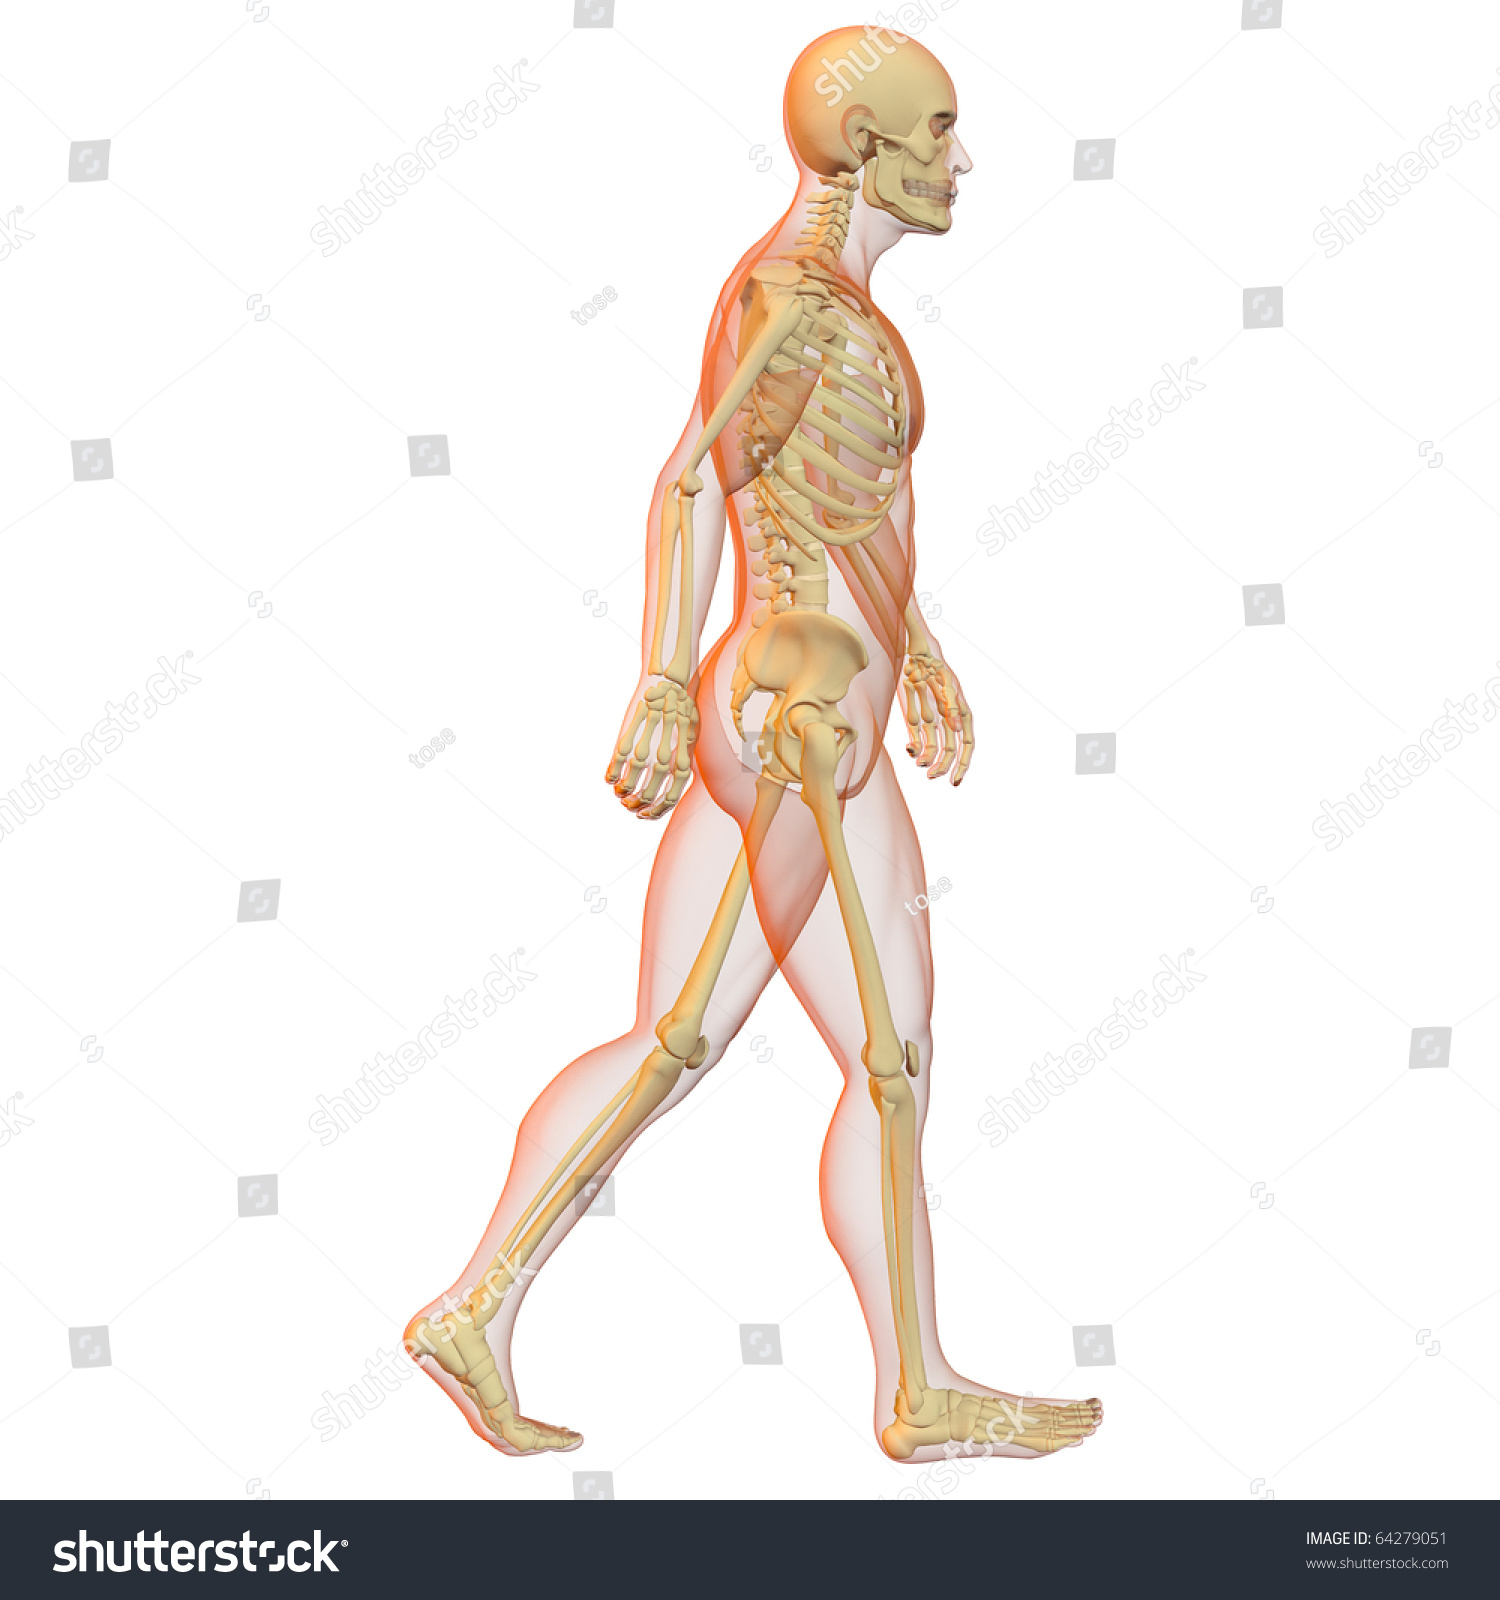 X-Ray Illustration Of Male Human Body And Skeleton. 3d ...